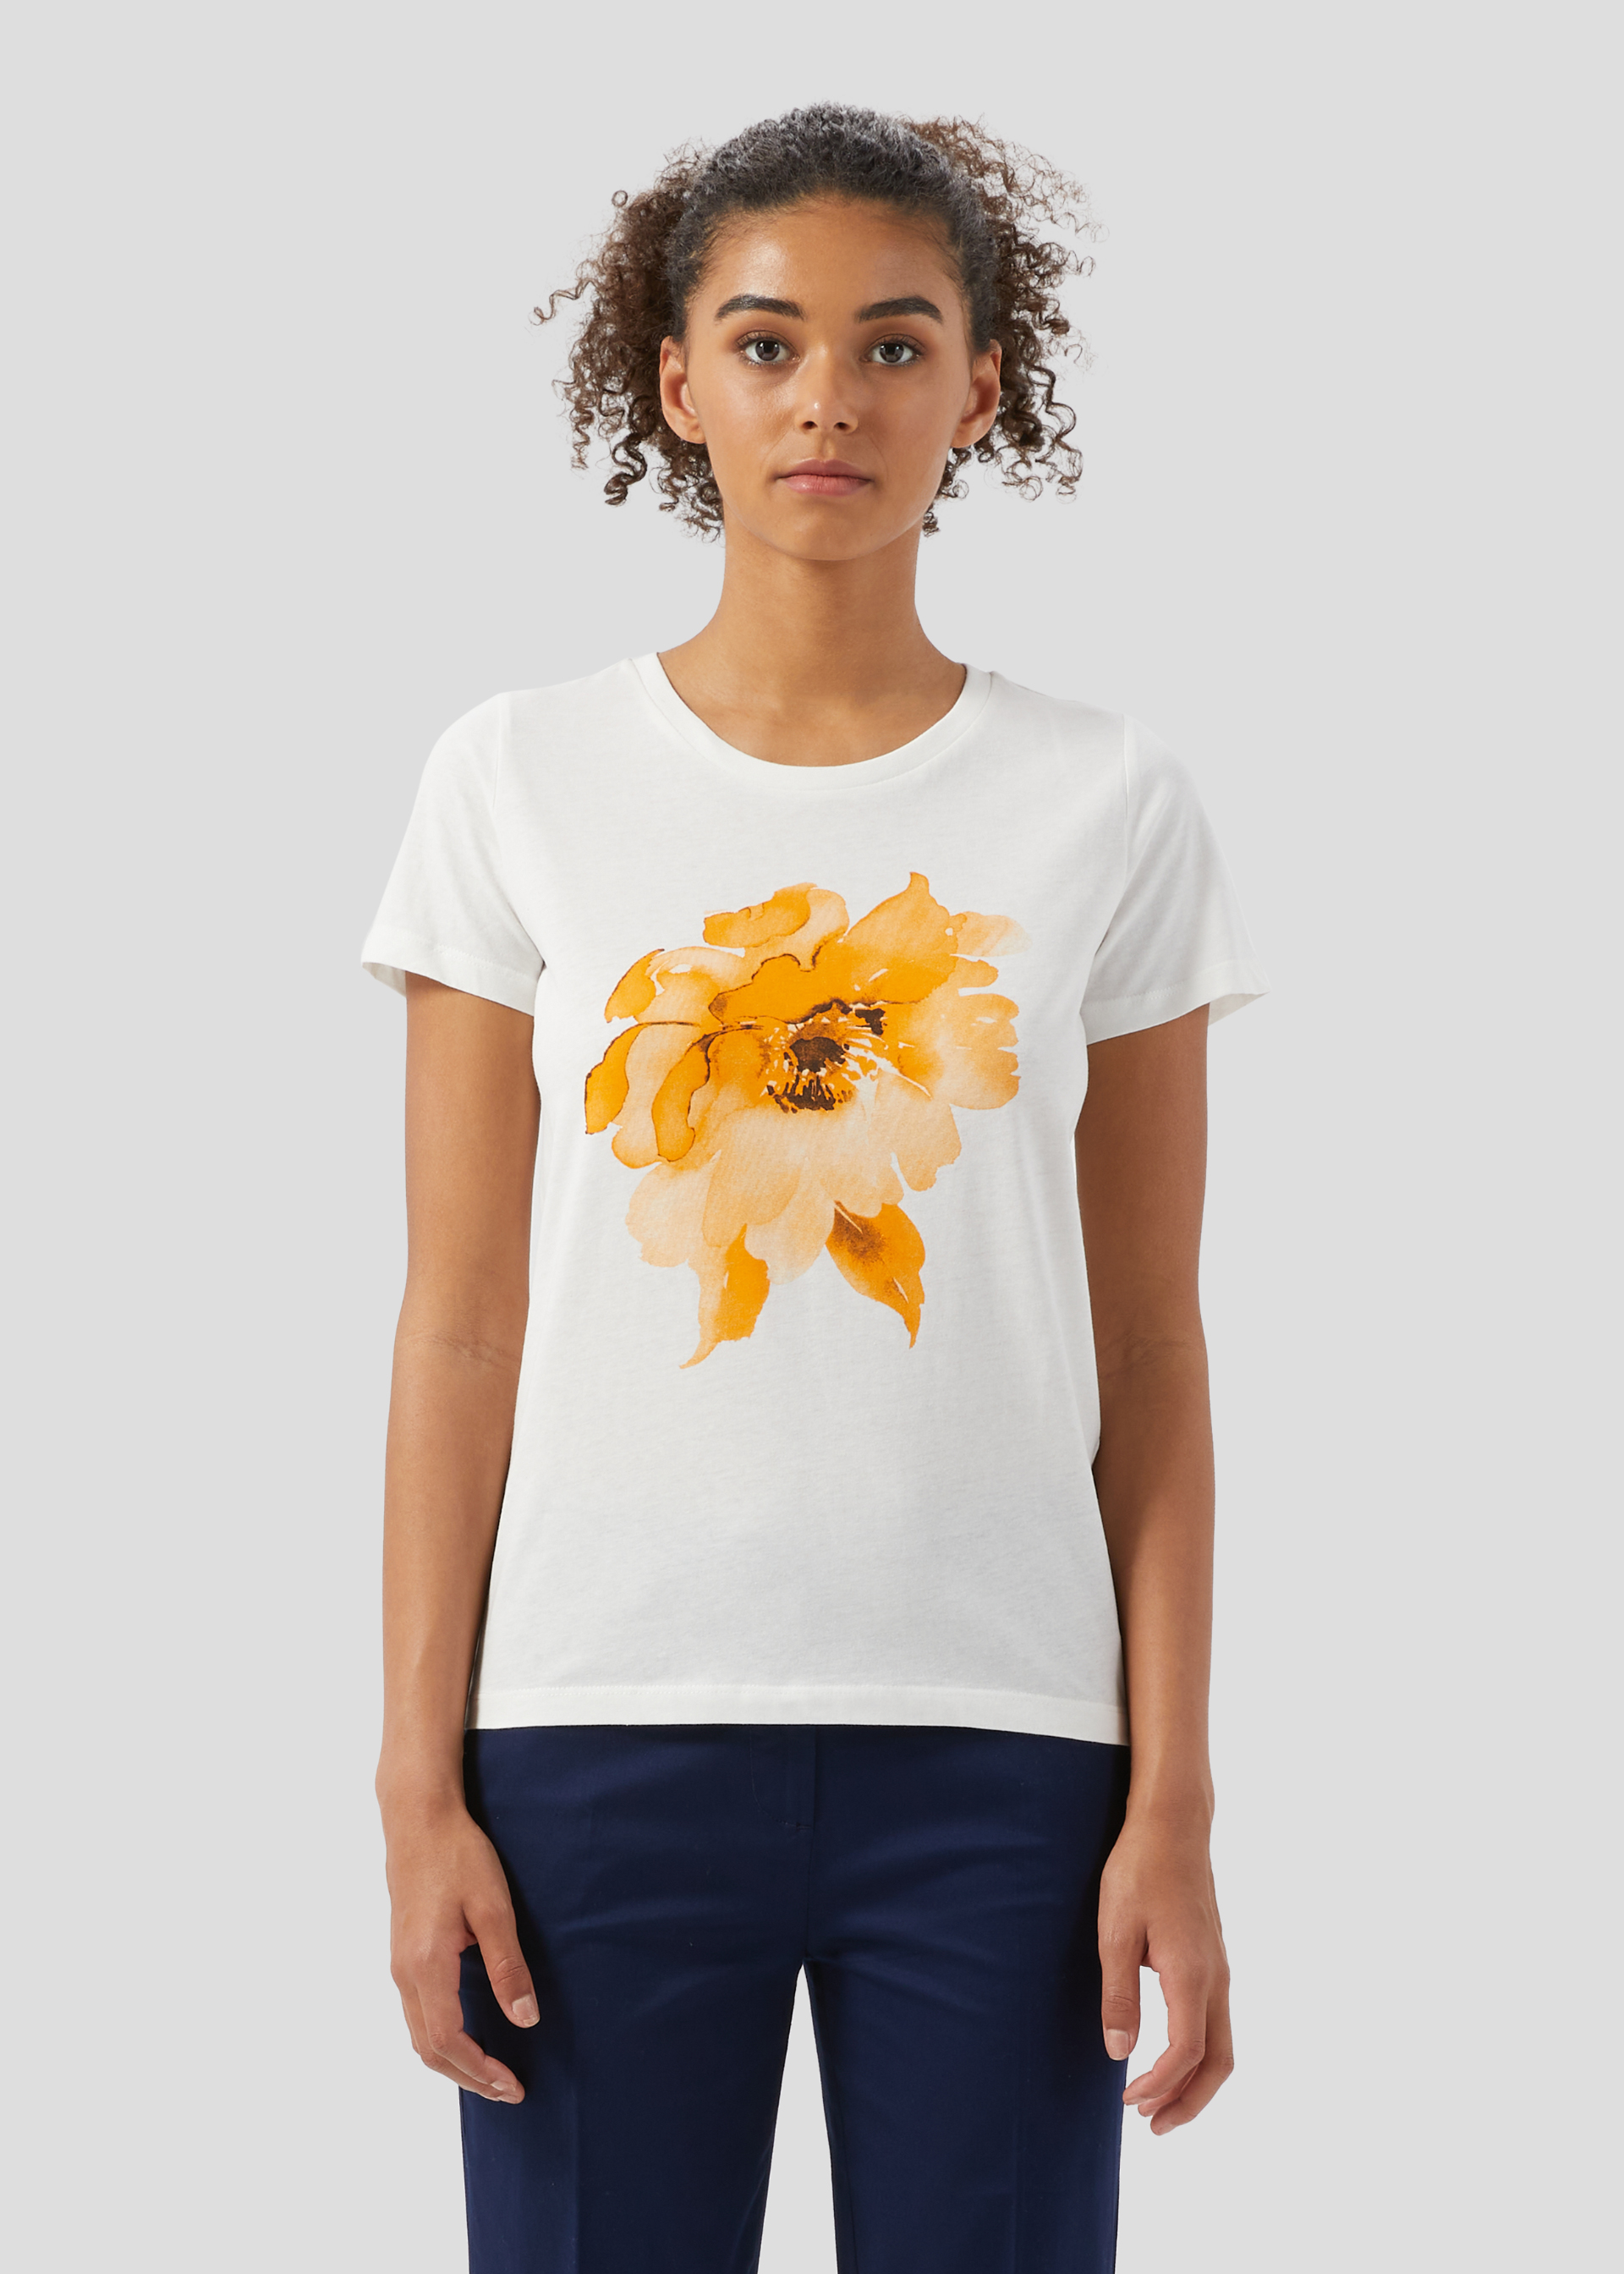 T-shirt stampa fiore